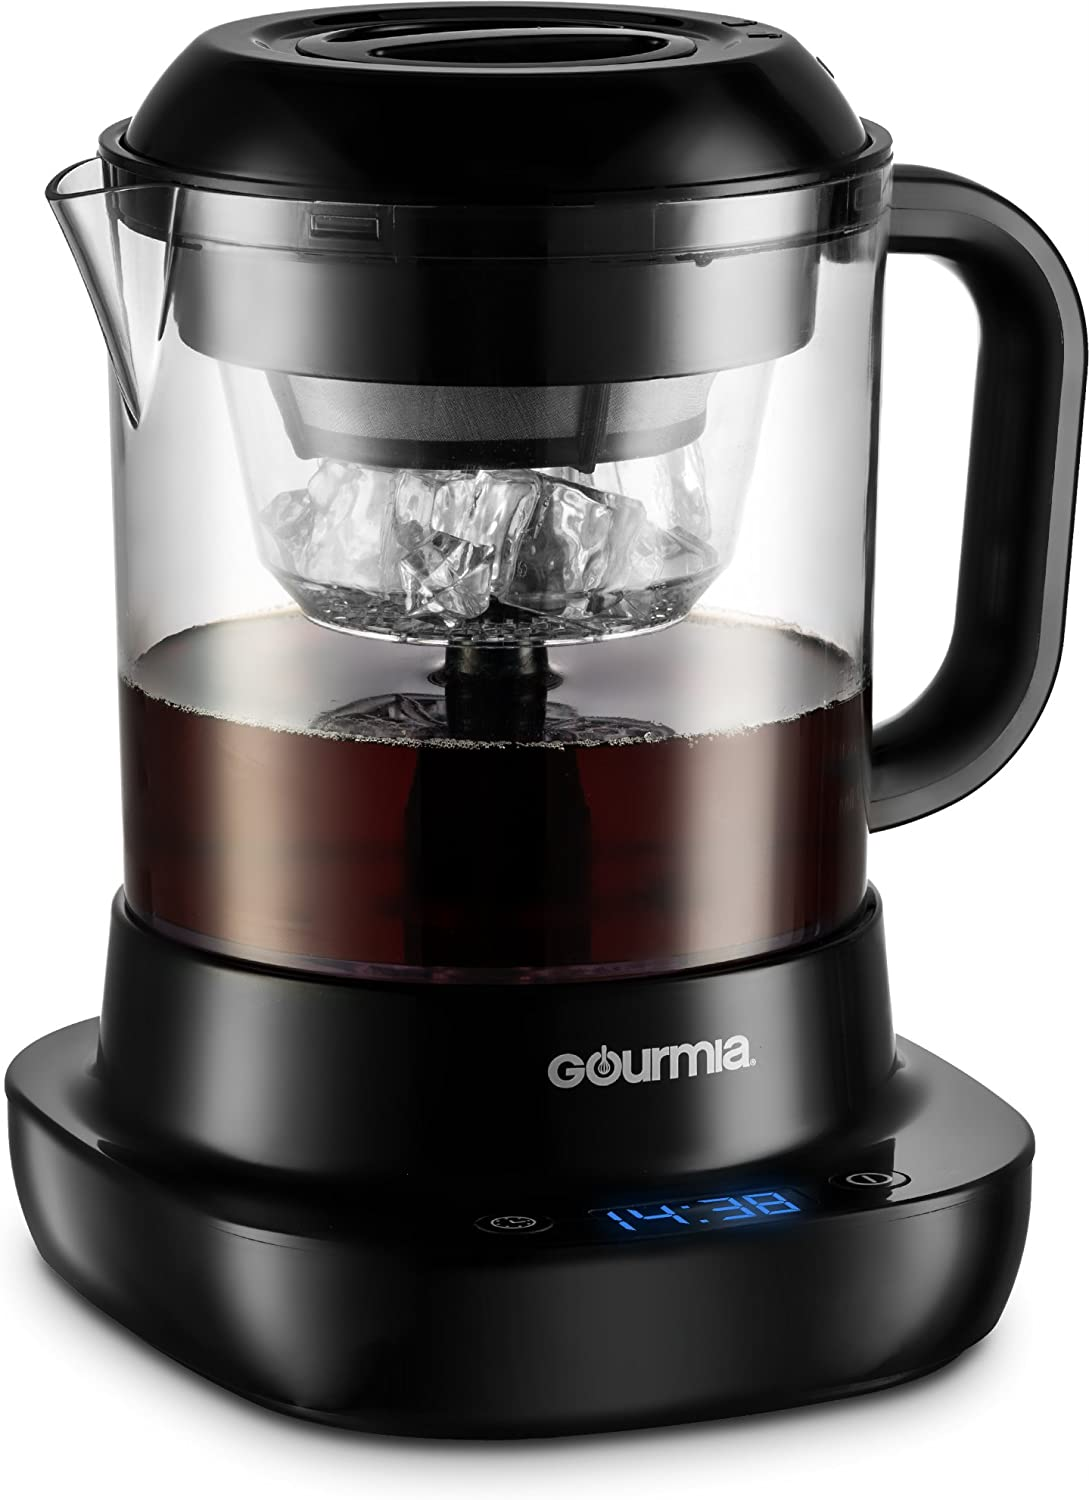 Gourmia GCM6850 New & Improved Automatic Cold Brew Coffee Maker - 4 Minutes Fast Brew - Patented Ice Chill Cycle - One Touch Digital - 4 Strength Selector - 4 Cups - 5W – Black B07DP7YSRX